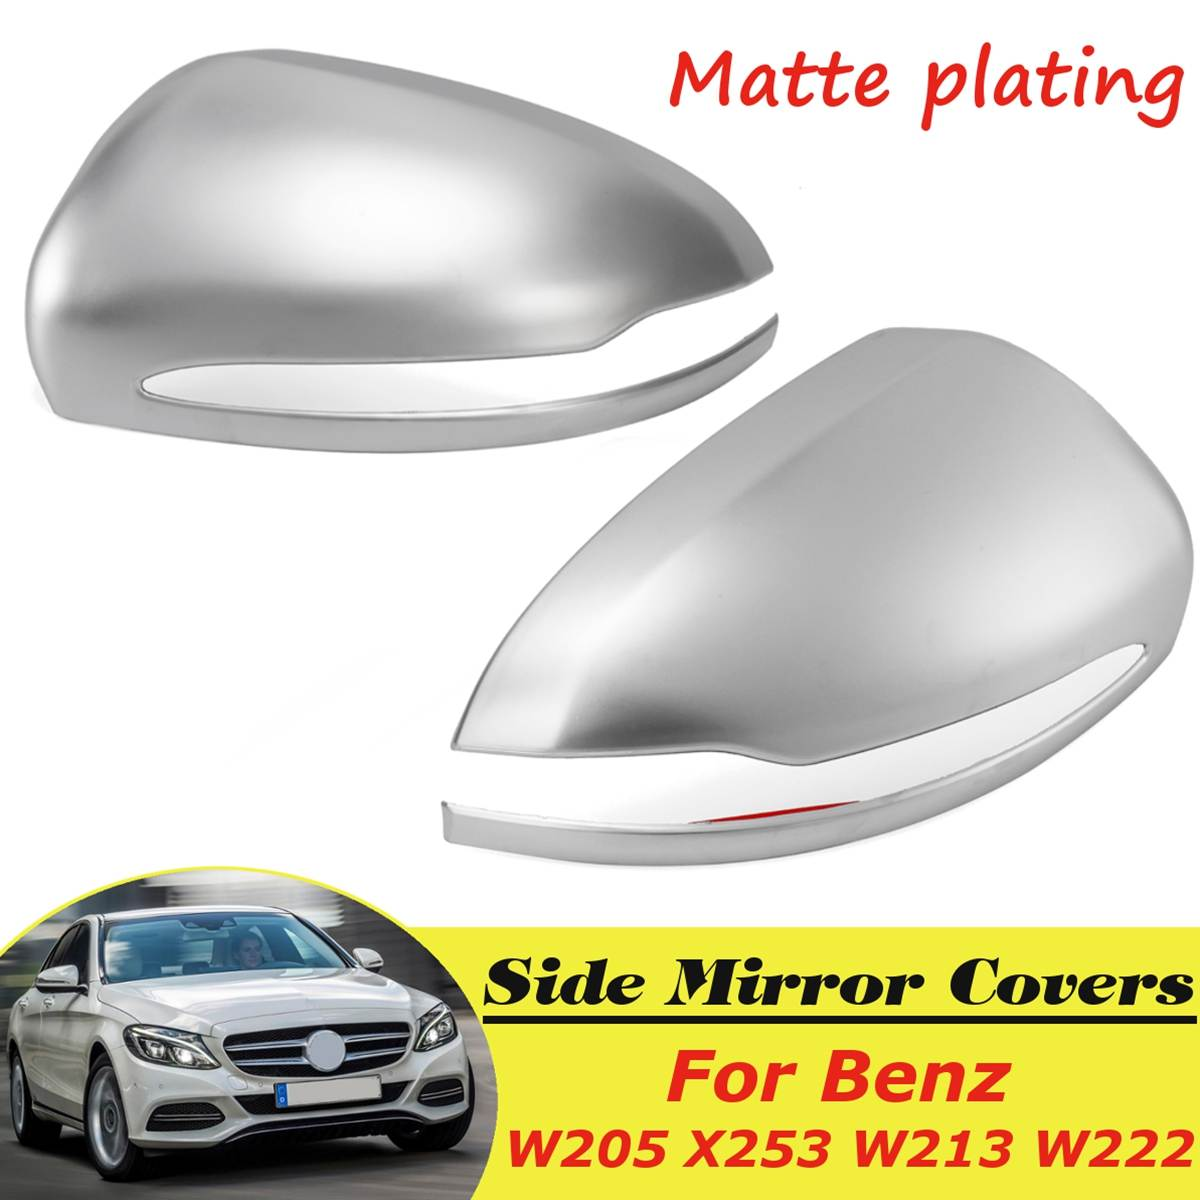 Glossy Black Side Wing Mirror Cover Caps Fits For Benz W205 X253 W213 W222